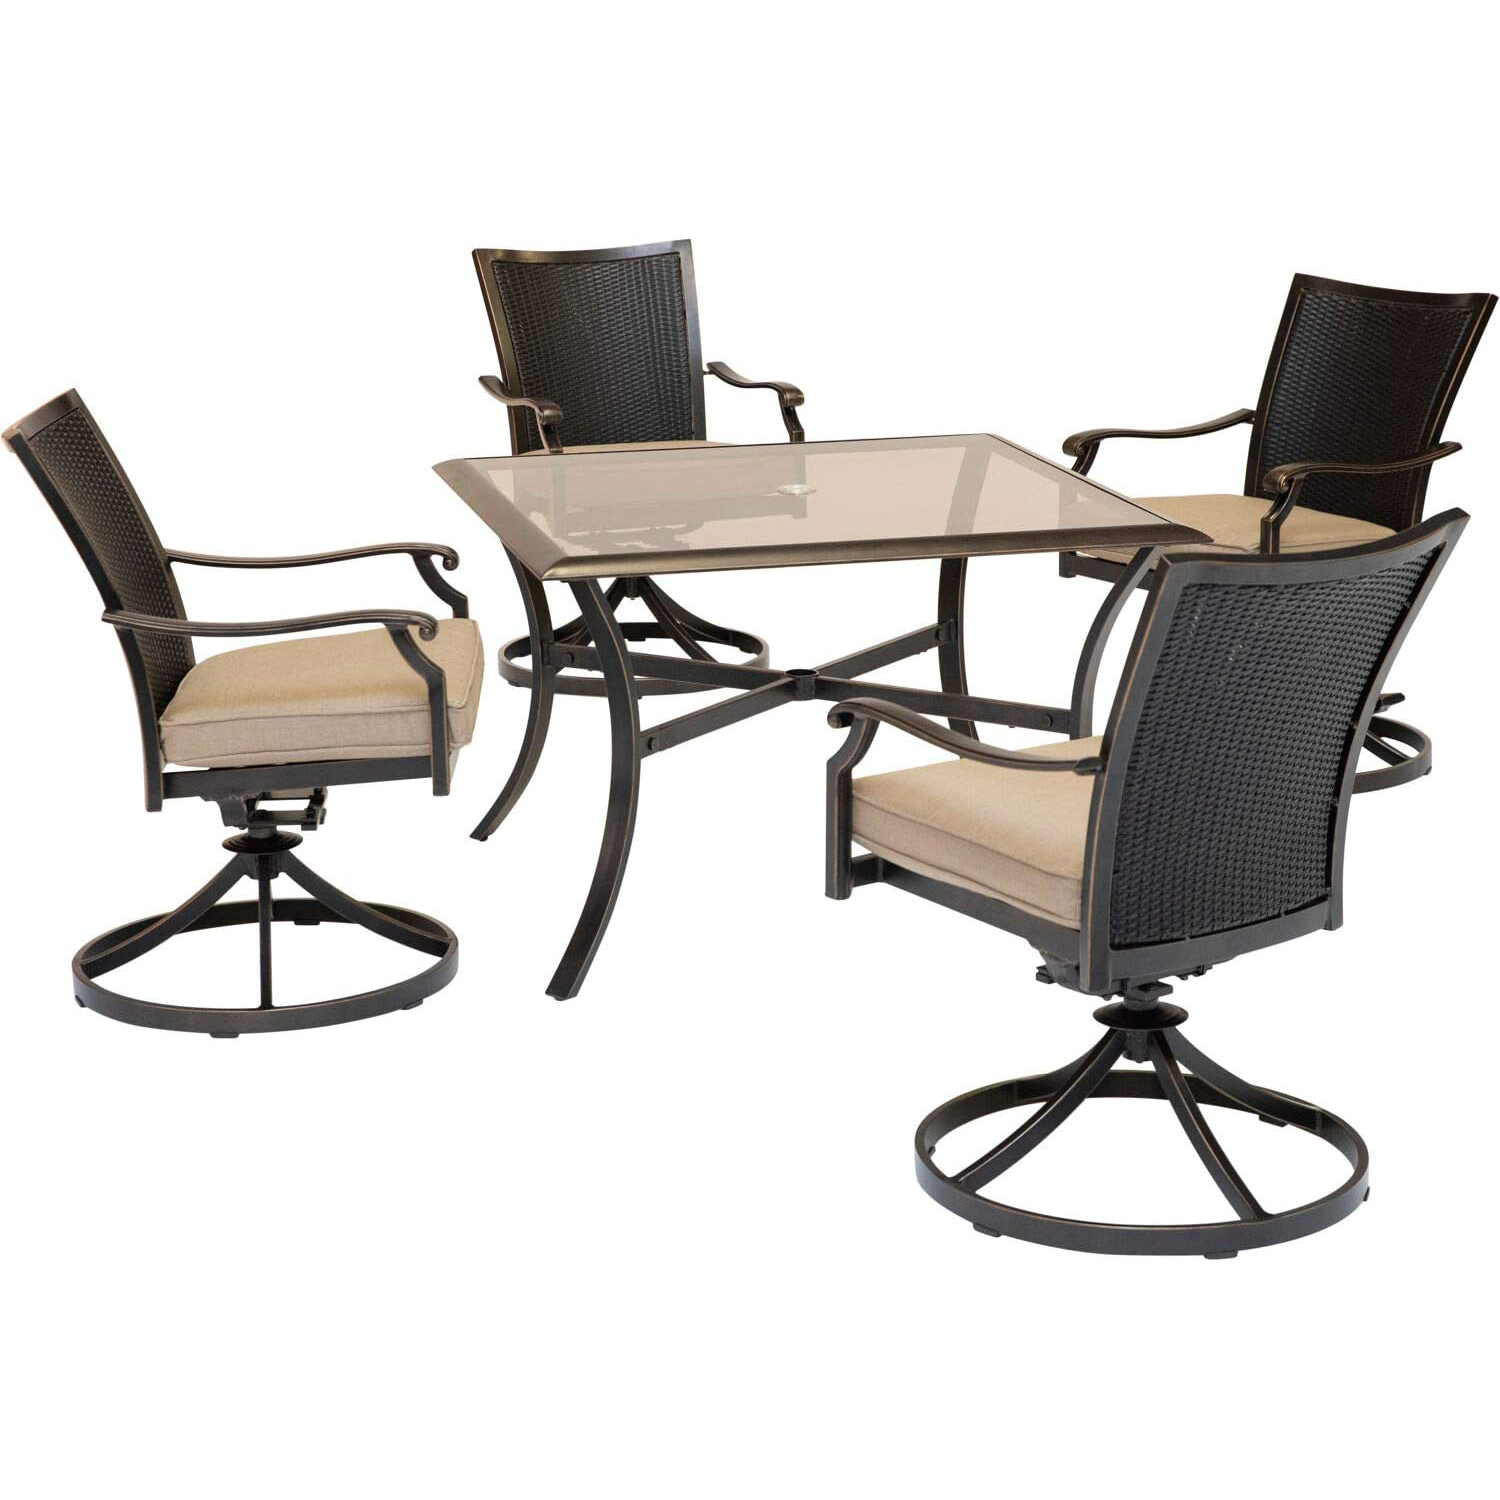 Hanover Traditions outdoor dining set